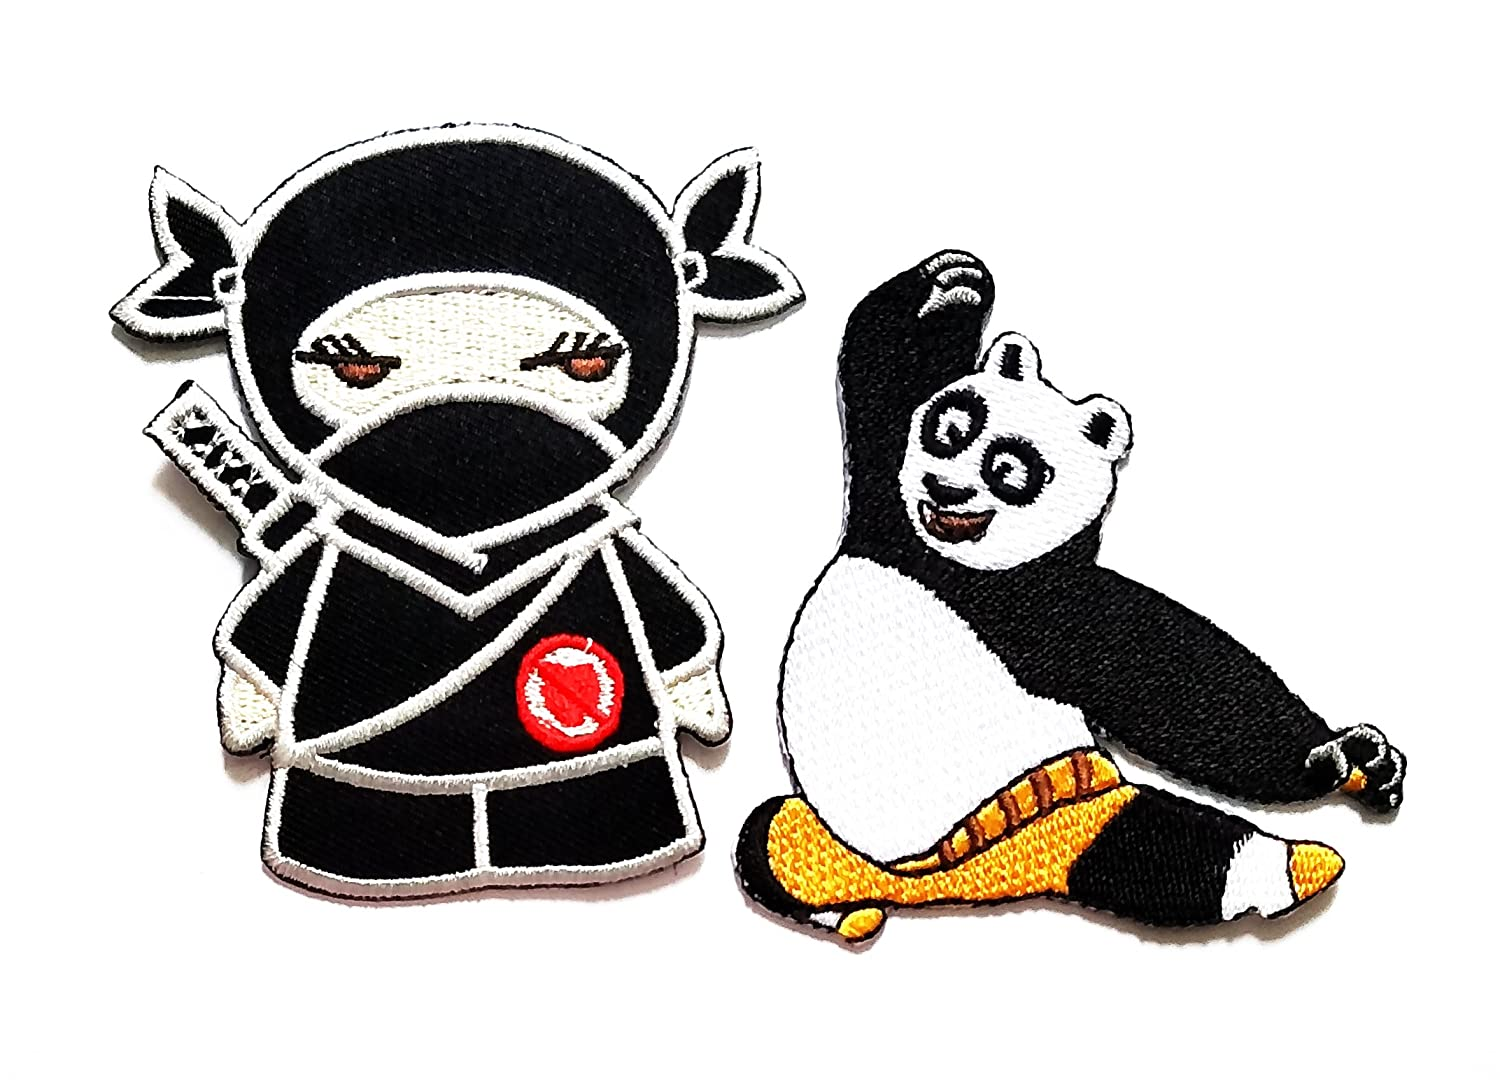 Amazon.com: Nipitshop Patches Set 2 Pcs Panda Ninja shinobi ...